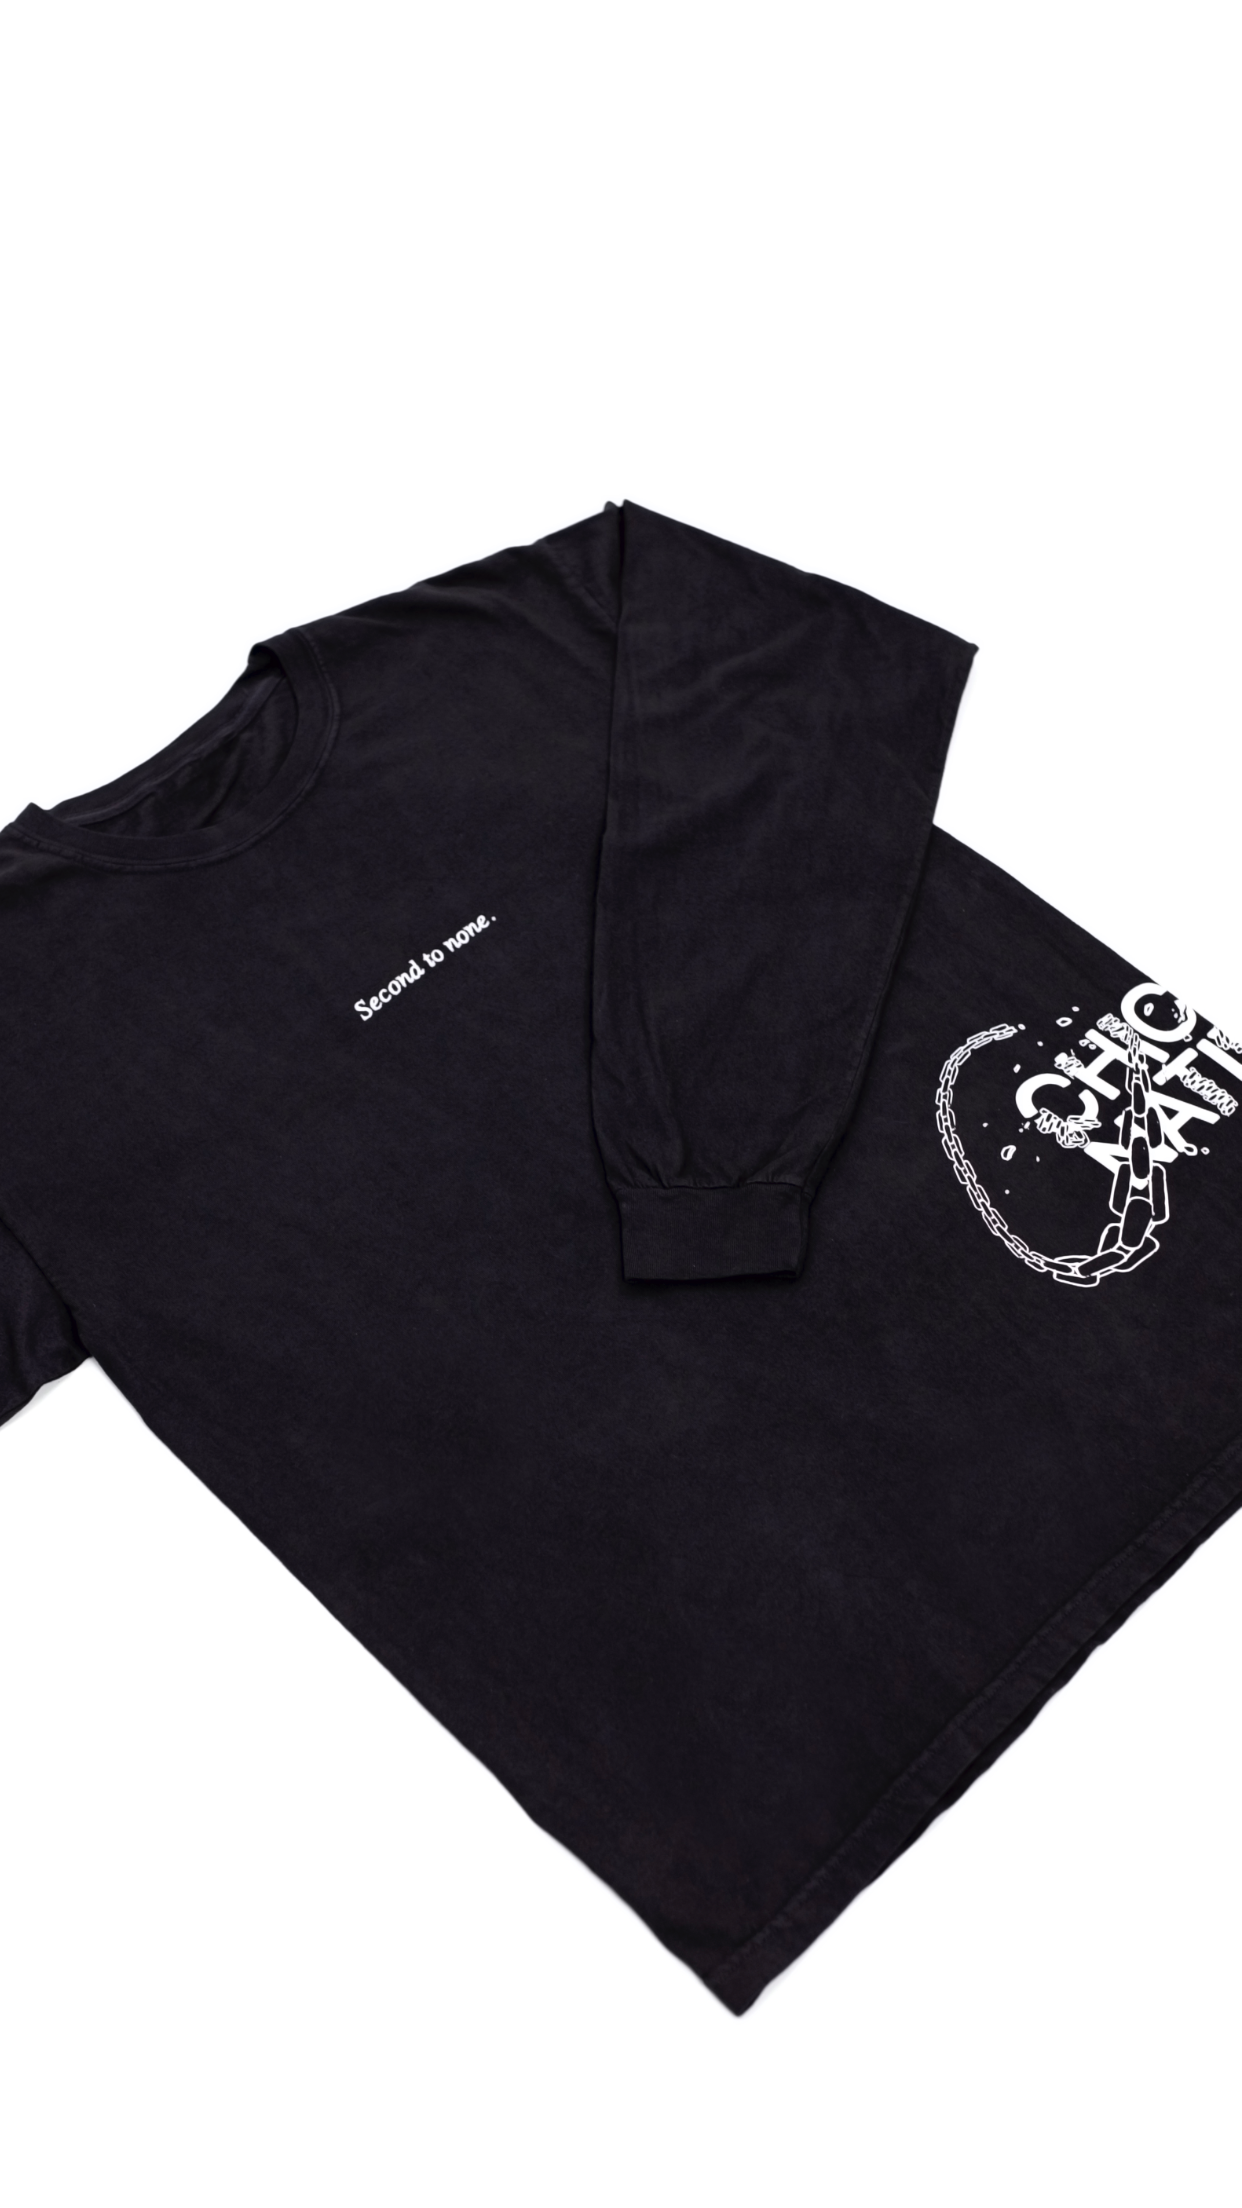 Chicago Native - Native Society - Juan Riesco Owner - Embroidered Local Streetwear 4.PNG